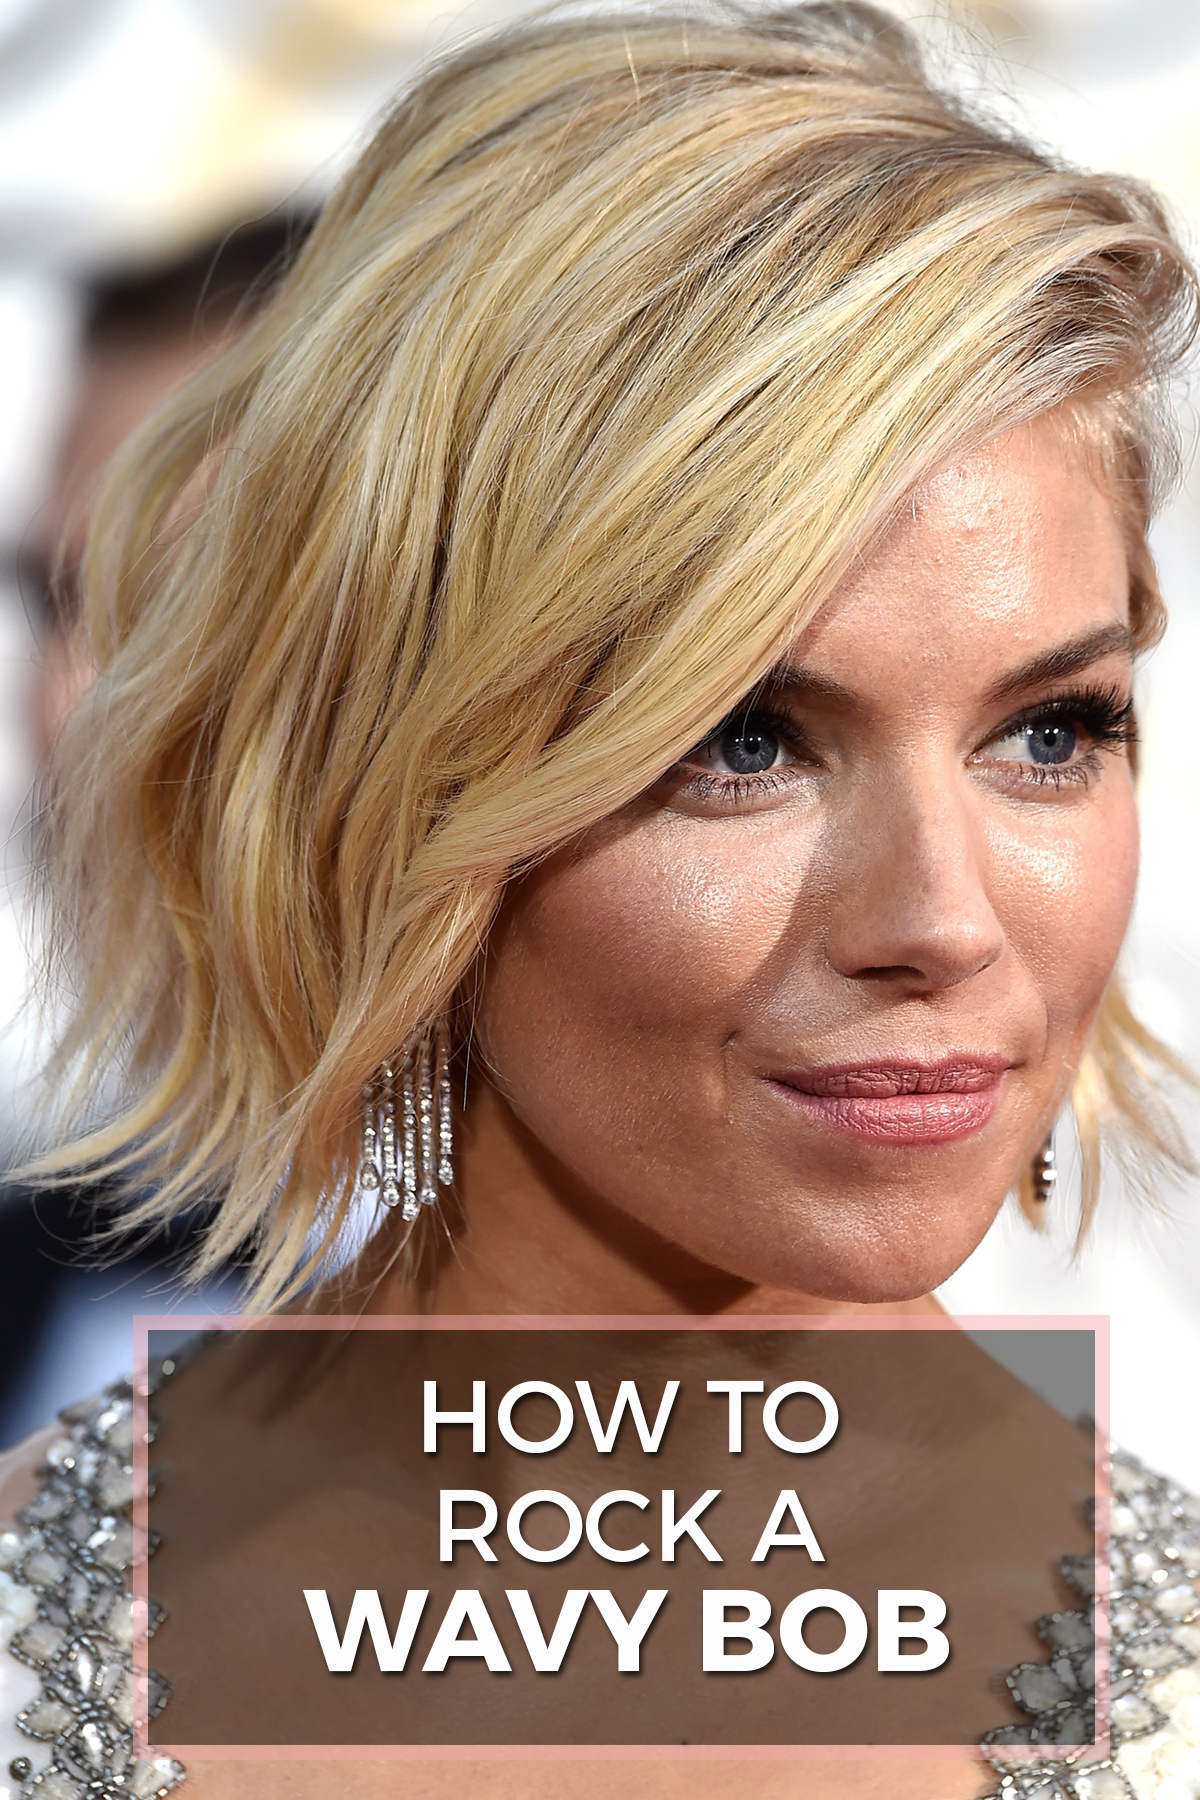 Wondrous Wavy Bob Hairstyles How To Rock This Summer39S 39It39 Cut The Short Hairstyles For Black Women Fulllsitofus